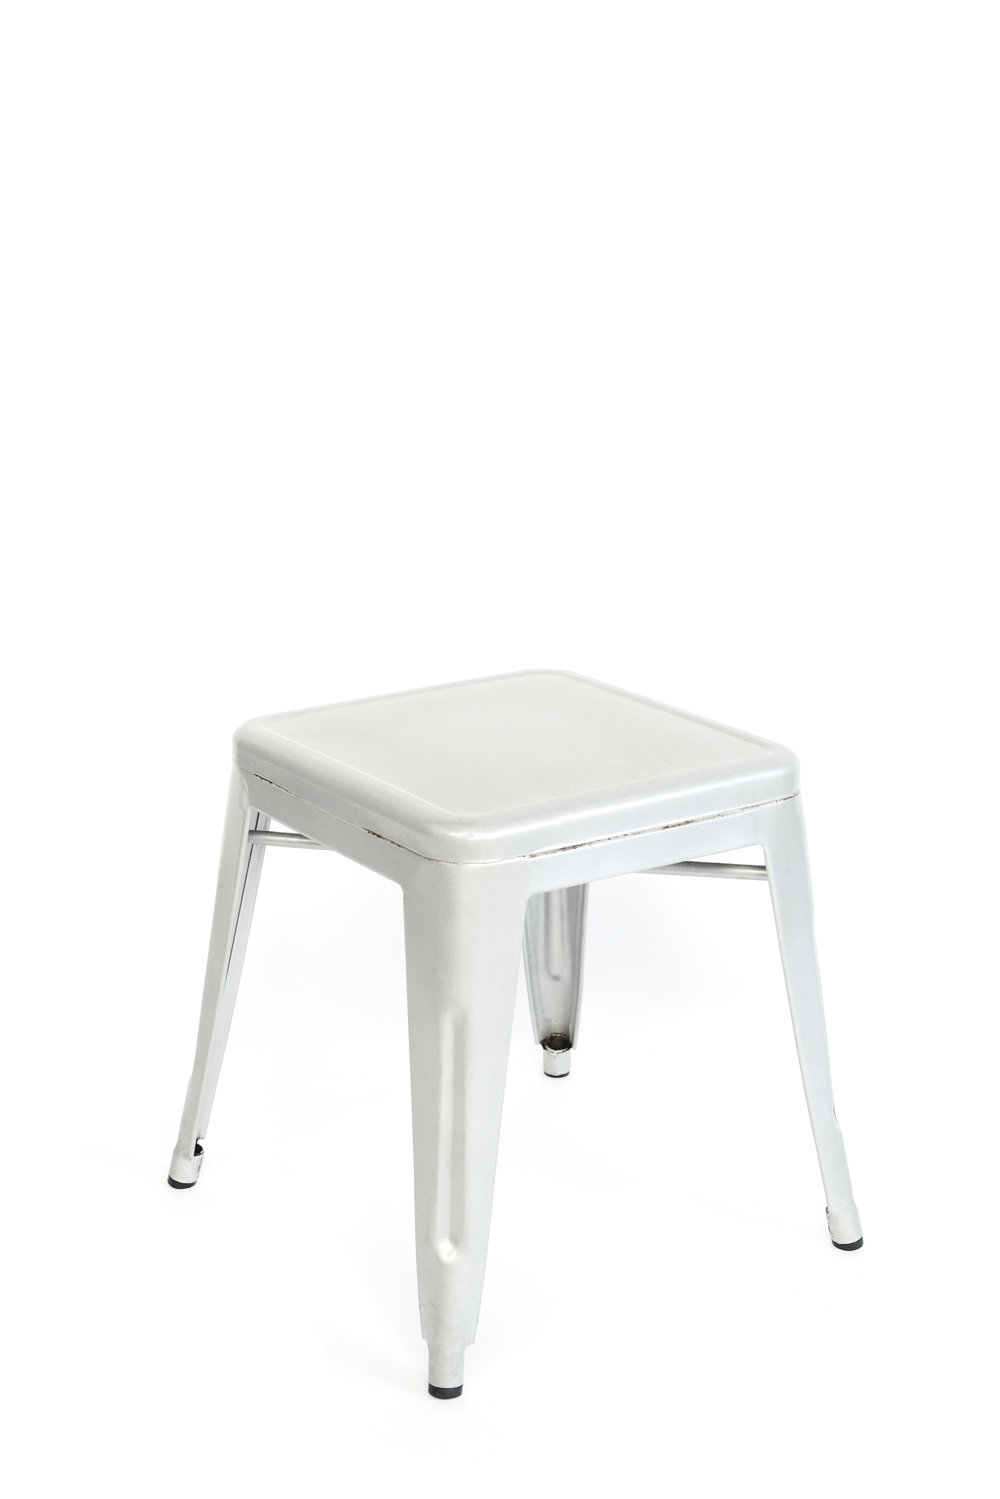 Silver stools qty. 2